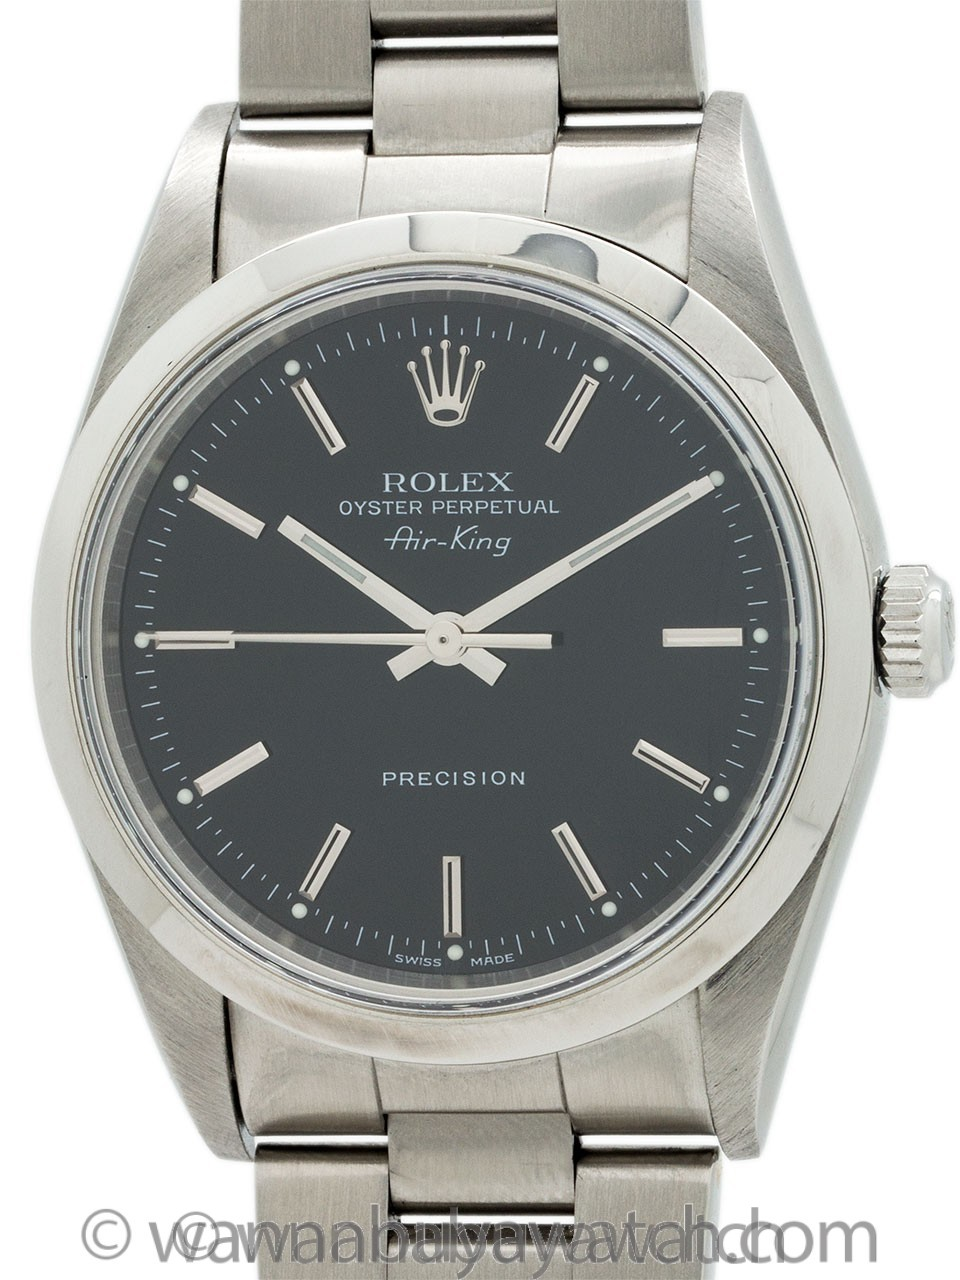 Rolex SS Oyster Perpetual Airking ref 14000 circa 2001